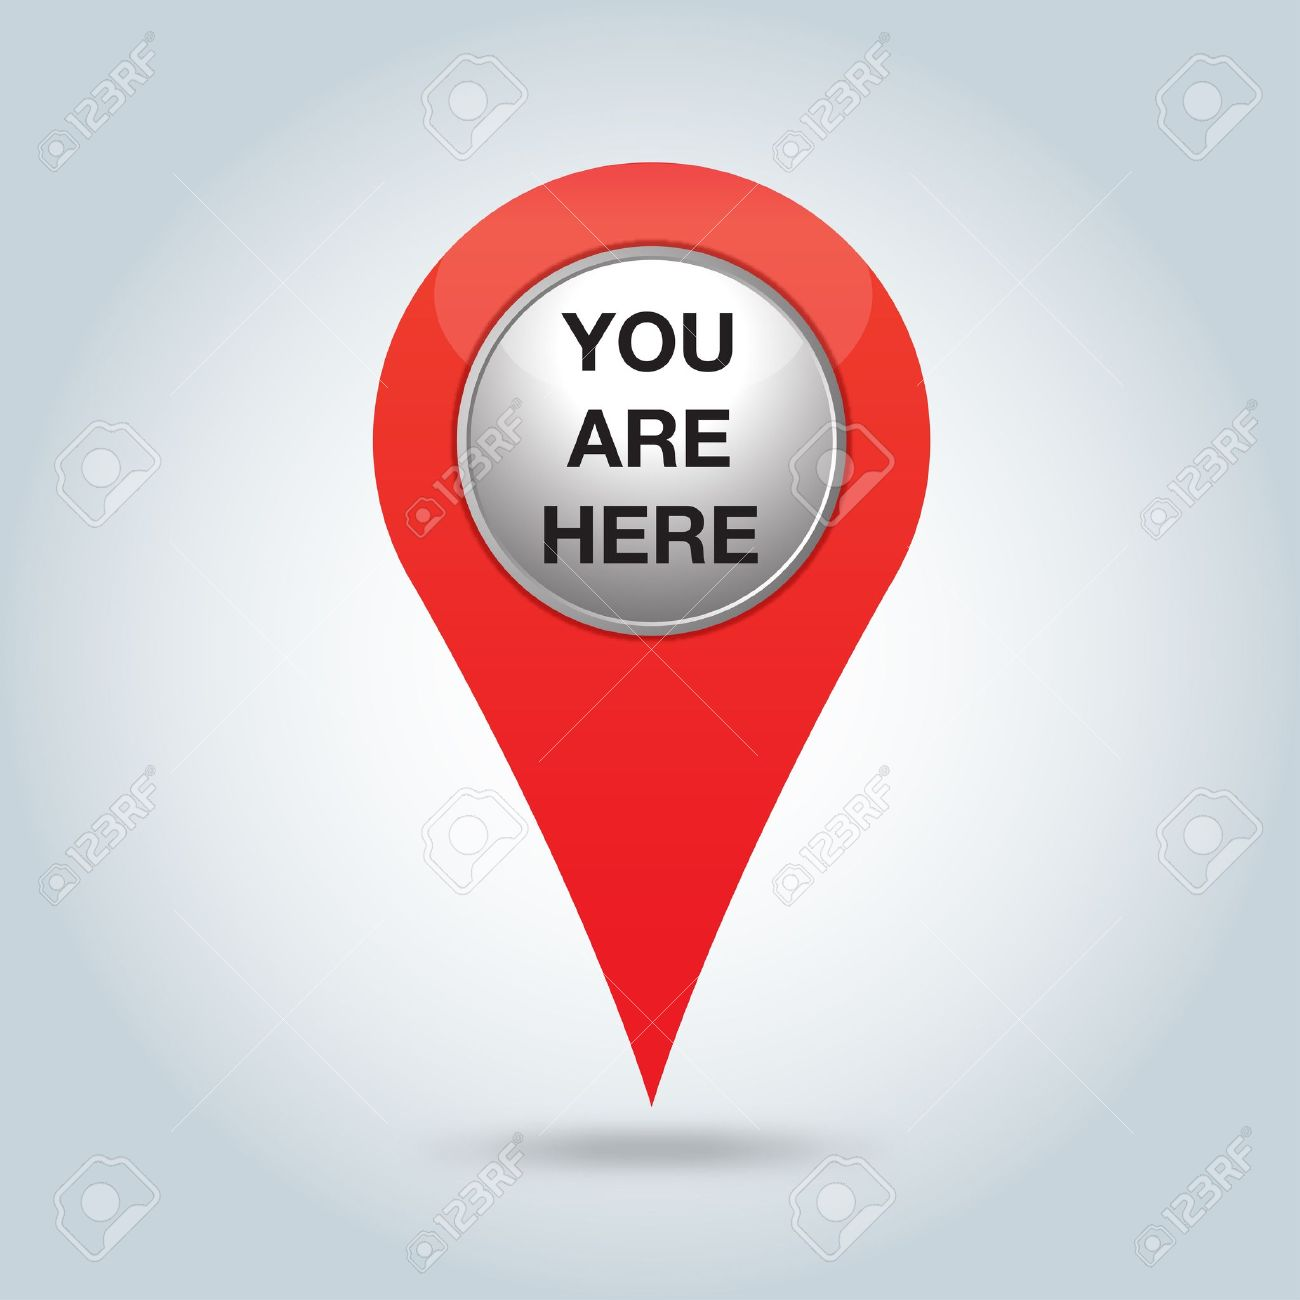 You Are Here Vector